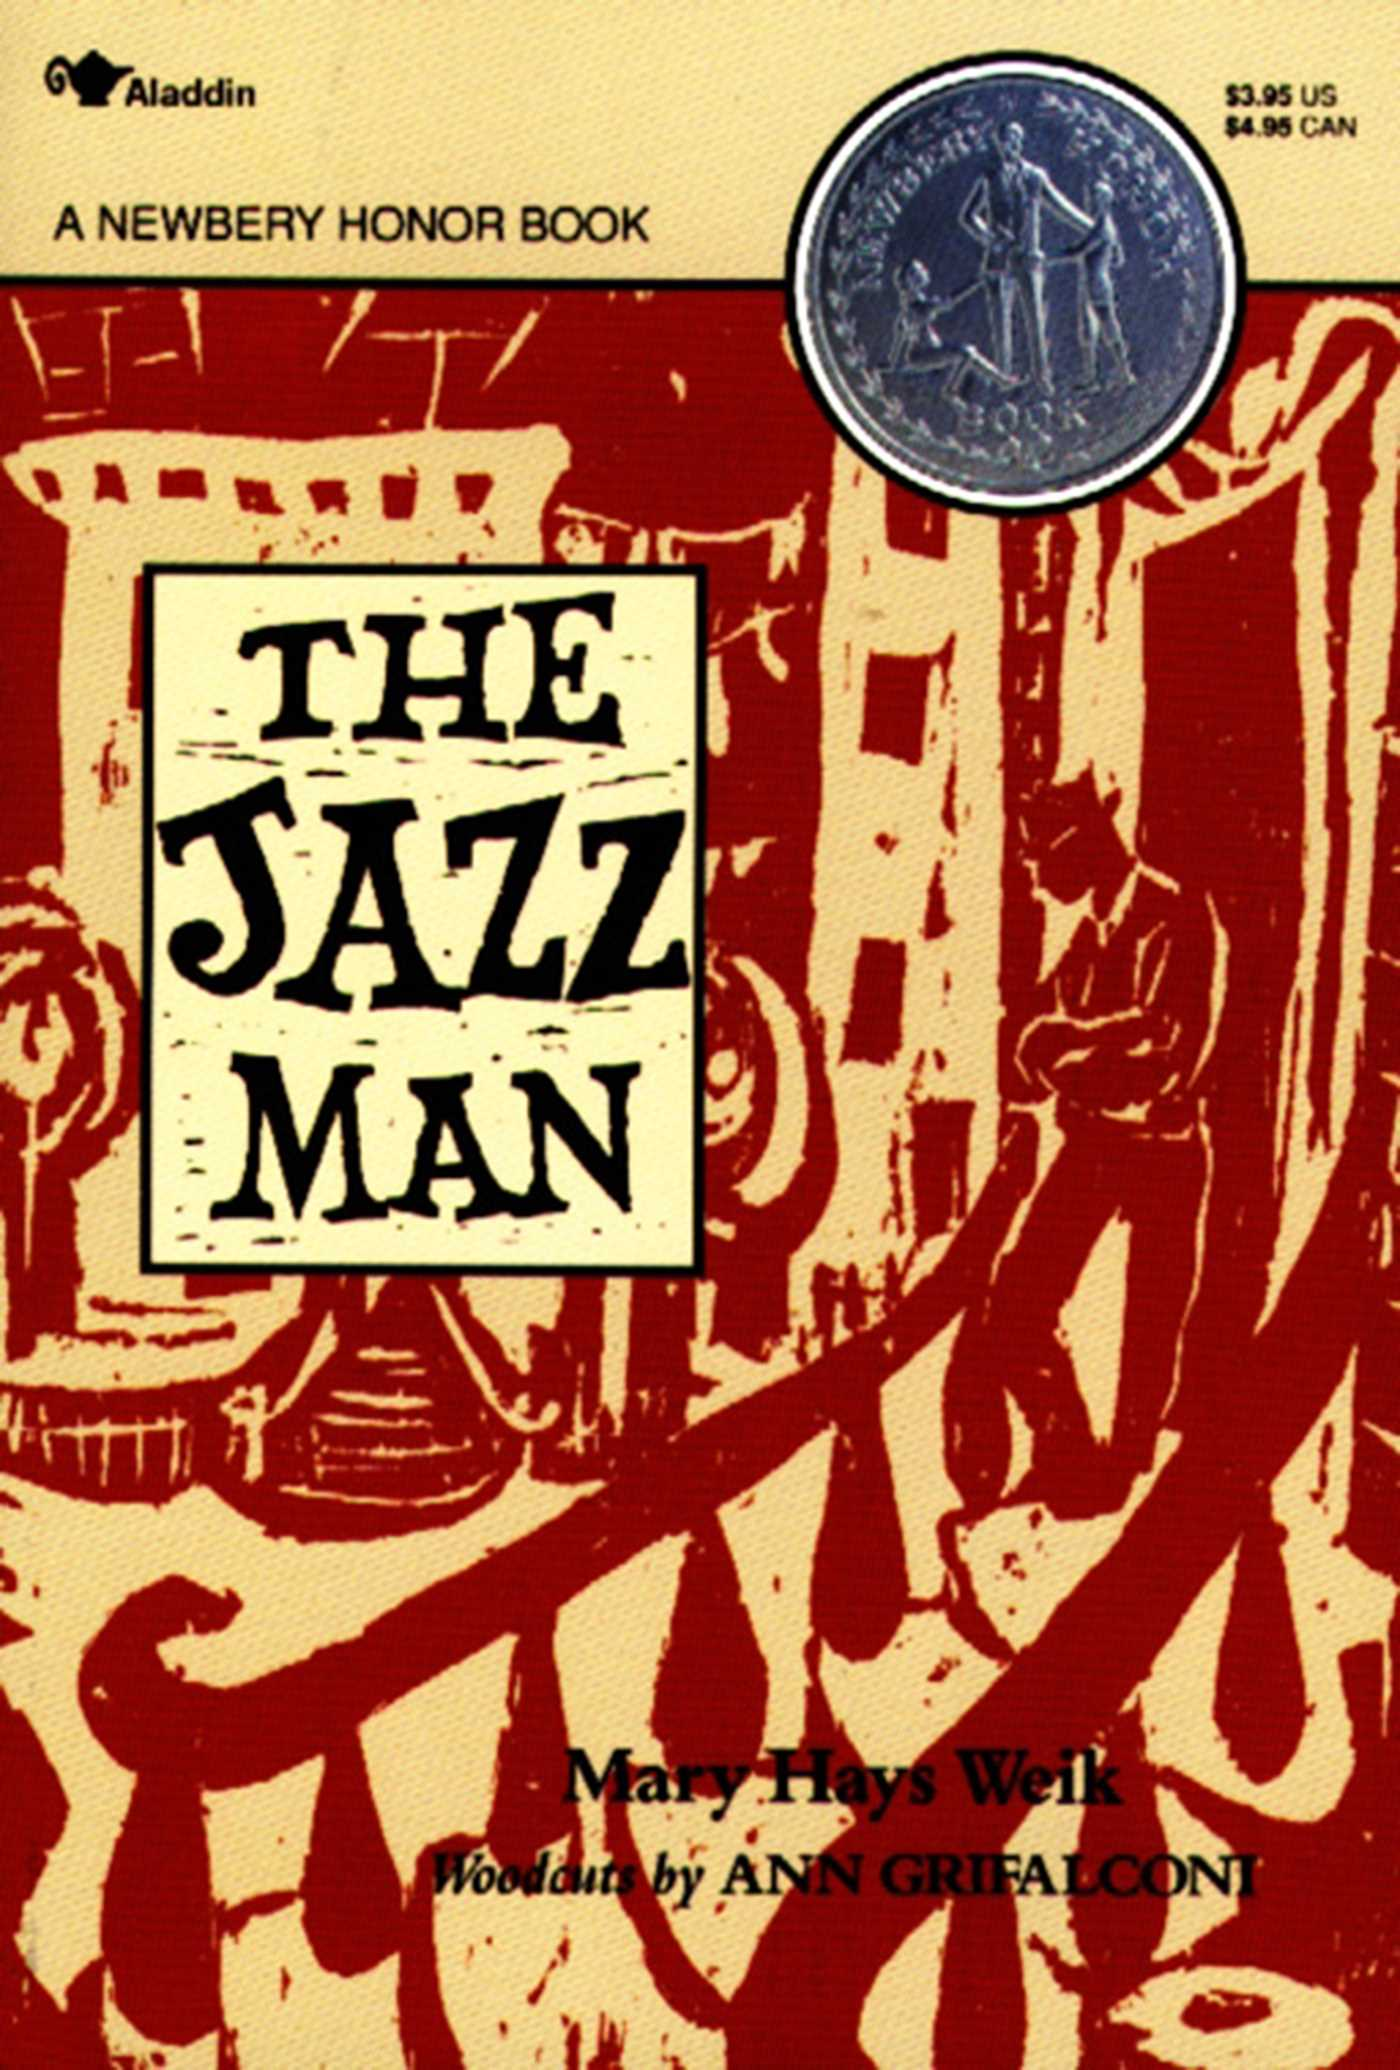 The-jazz-man-9780689717673_hr